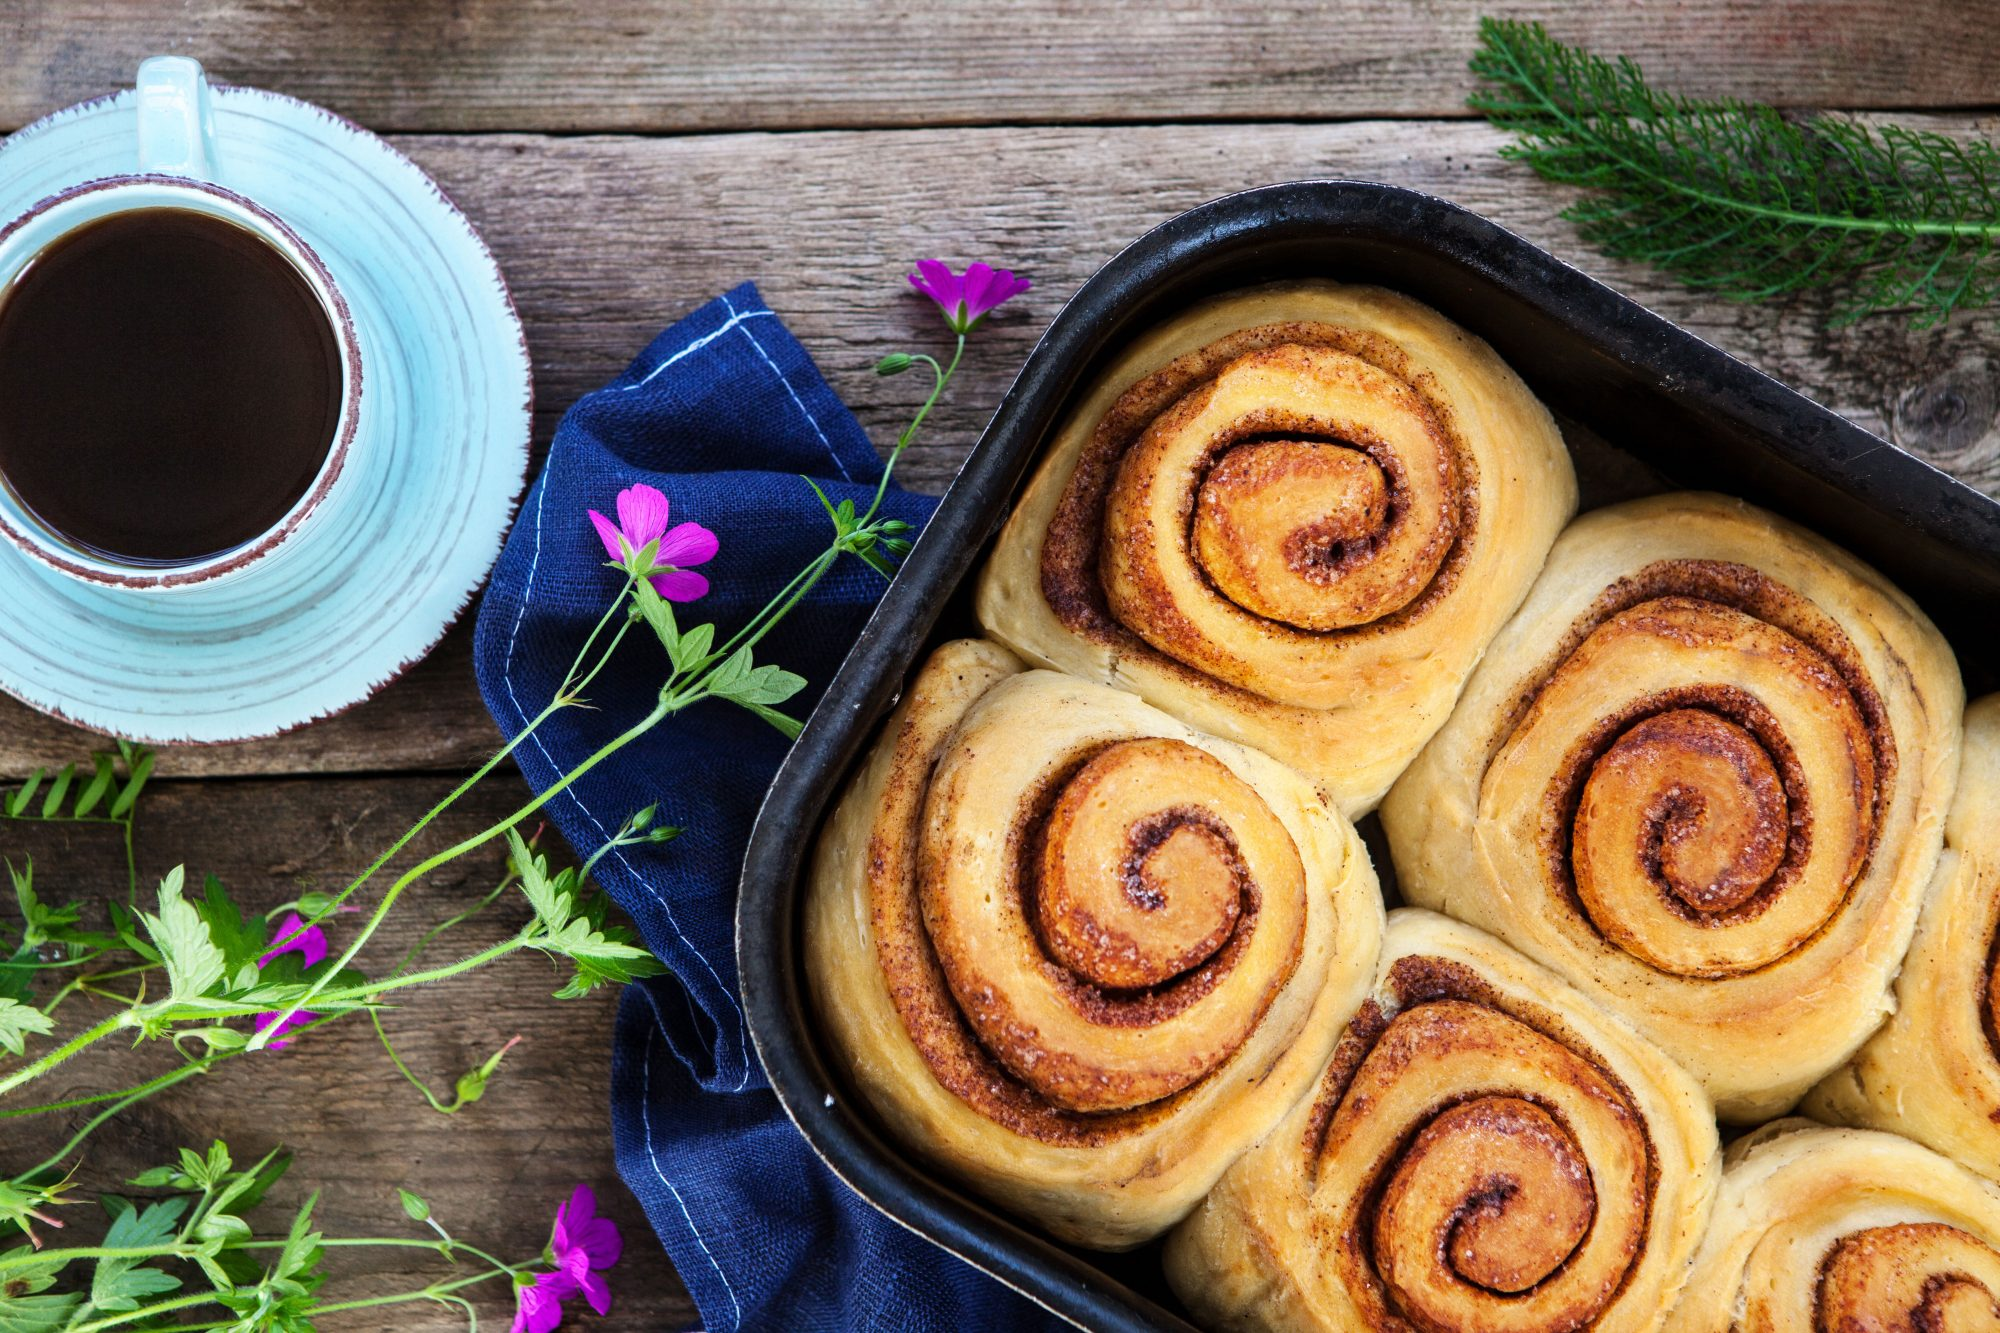 RX_1702_Coffee-and-Cinnamon-Rolls_Fika.jpg